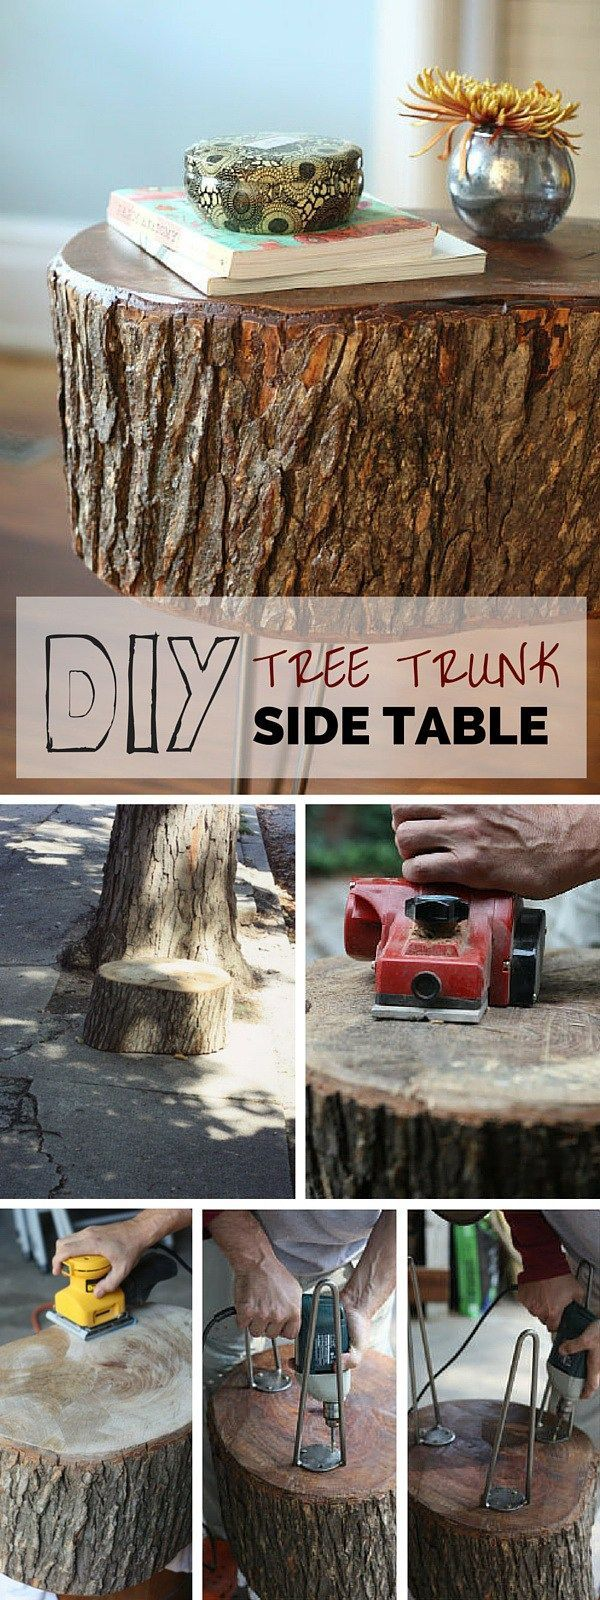 Tree Trunk Side Table: Tree trunk furniture is a trendy rustic accent in many interior design styles.